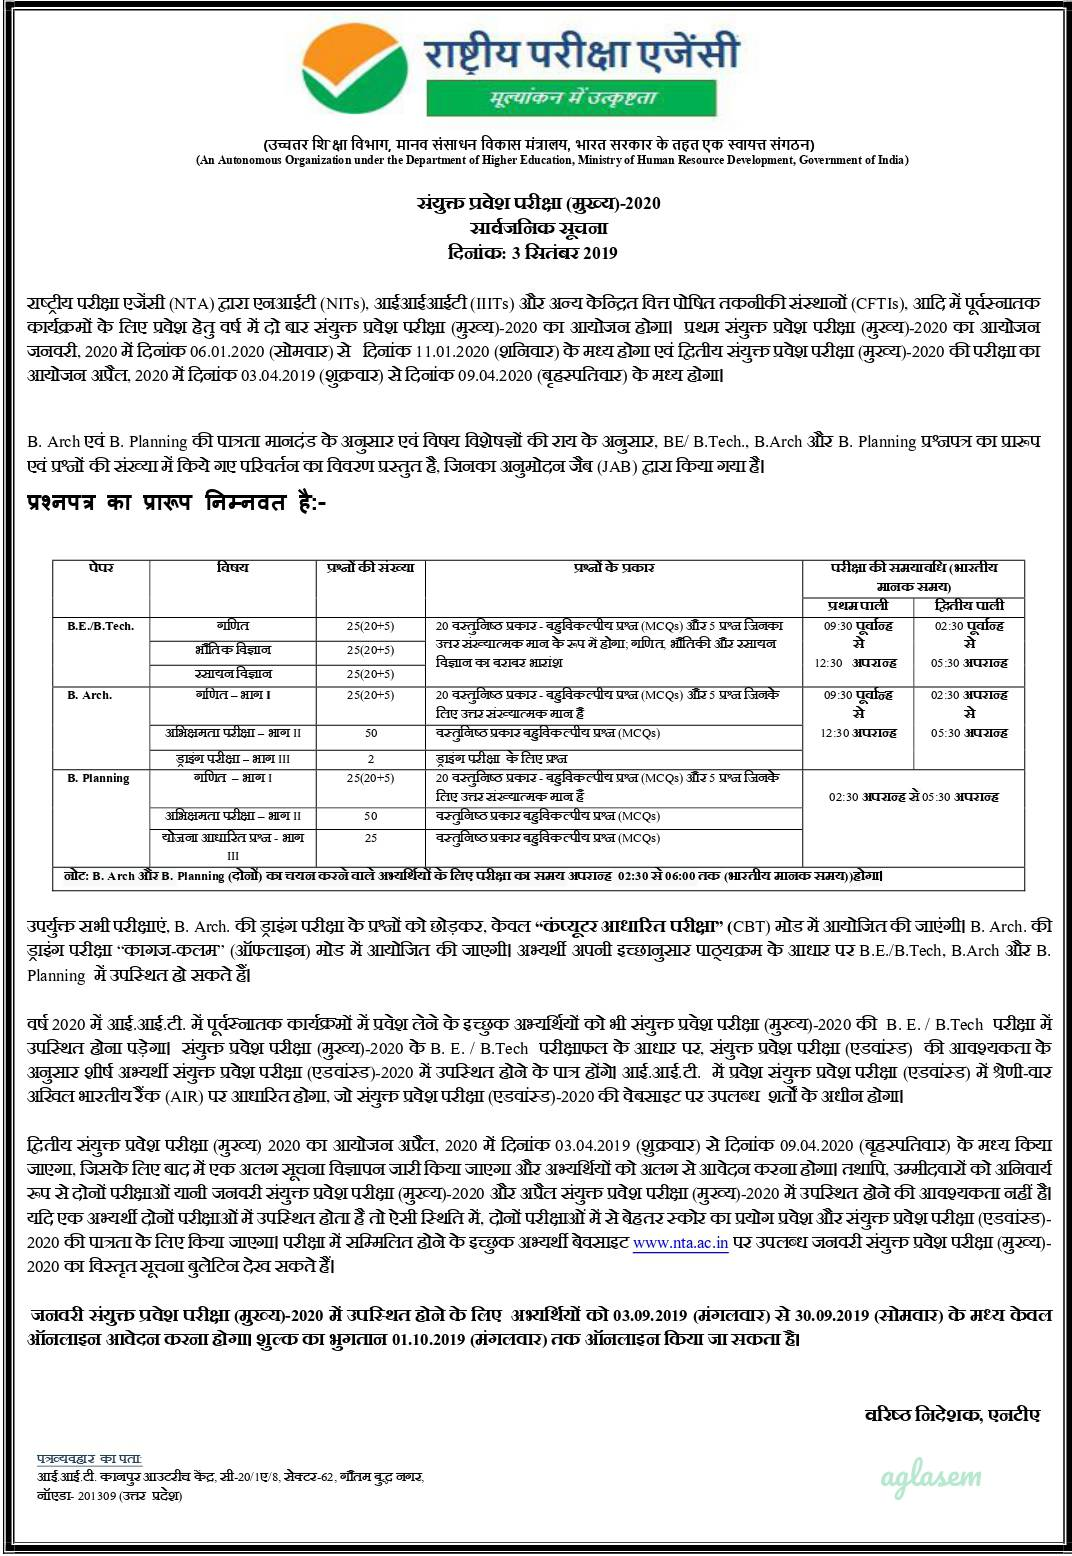 JEE Main 2020 Exam Pattern changed! Numerical questions added, questions reduced, three papers instead of two in new pattern